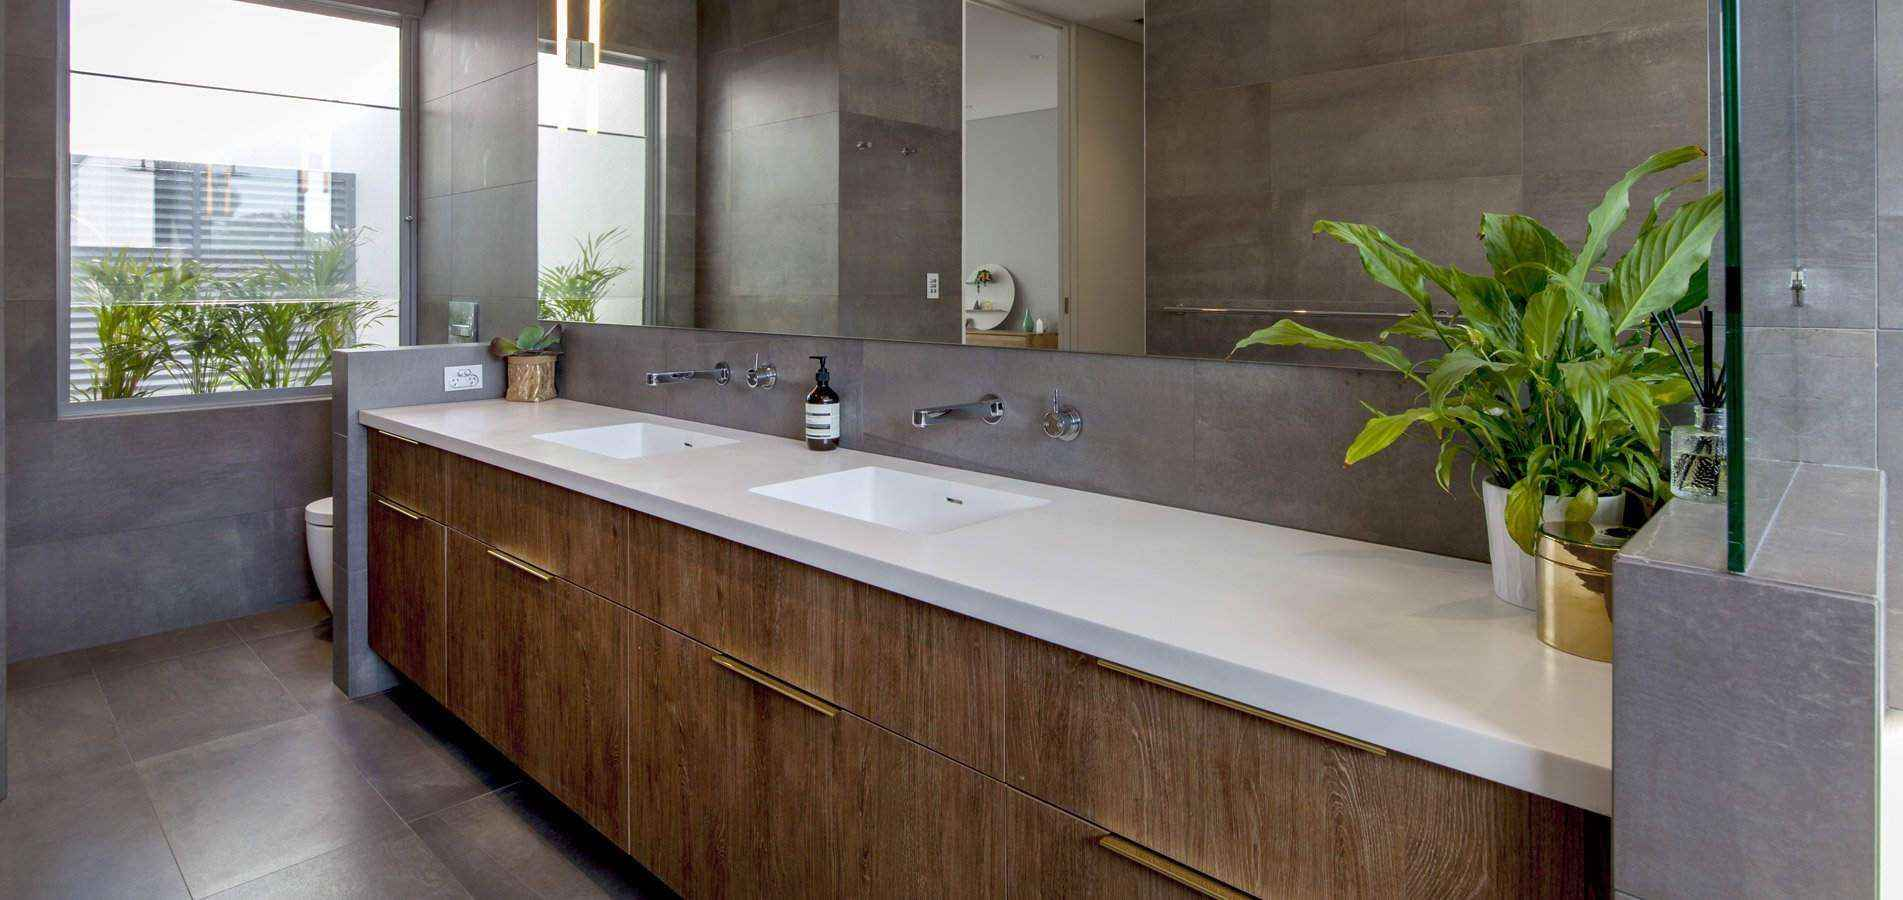 Recessed Bathroom Medicine Cabinets: Bathroom Cabinets Perth